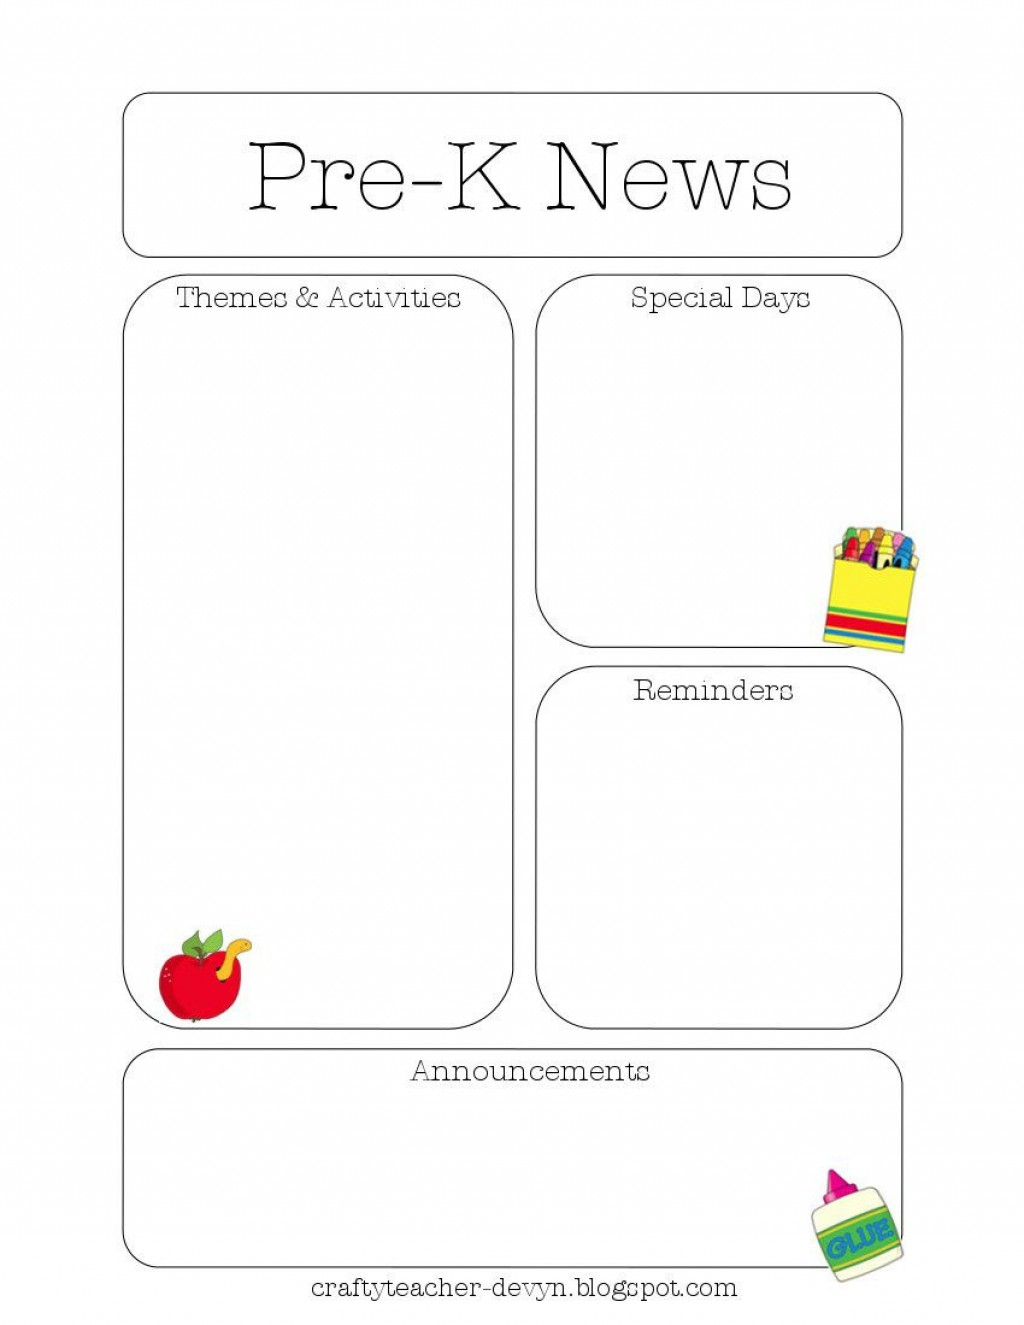 009 Stupendou Pre K Newsletter Template Picture  Templates Free Printable ClassroomLarge